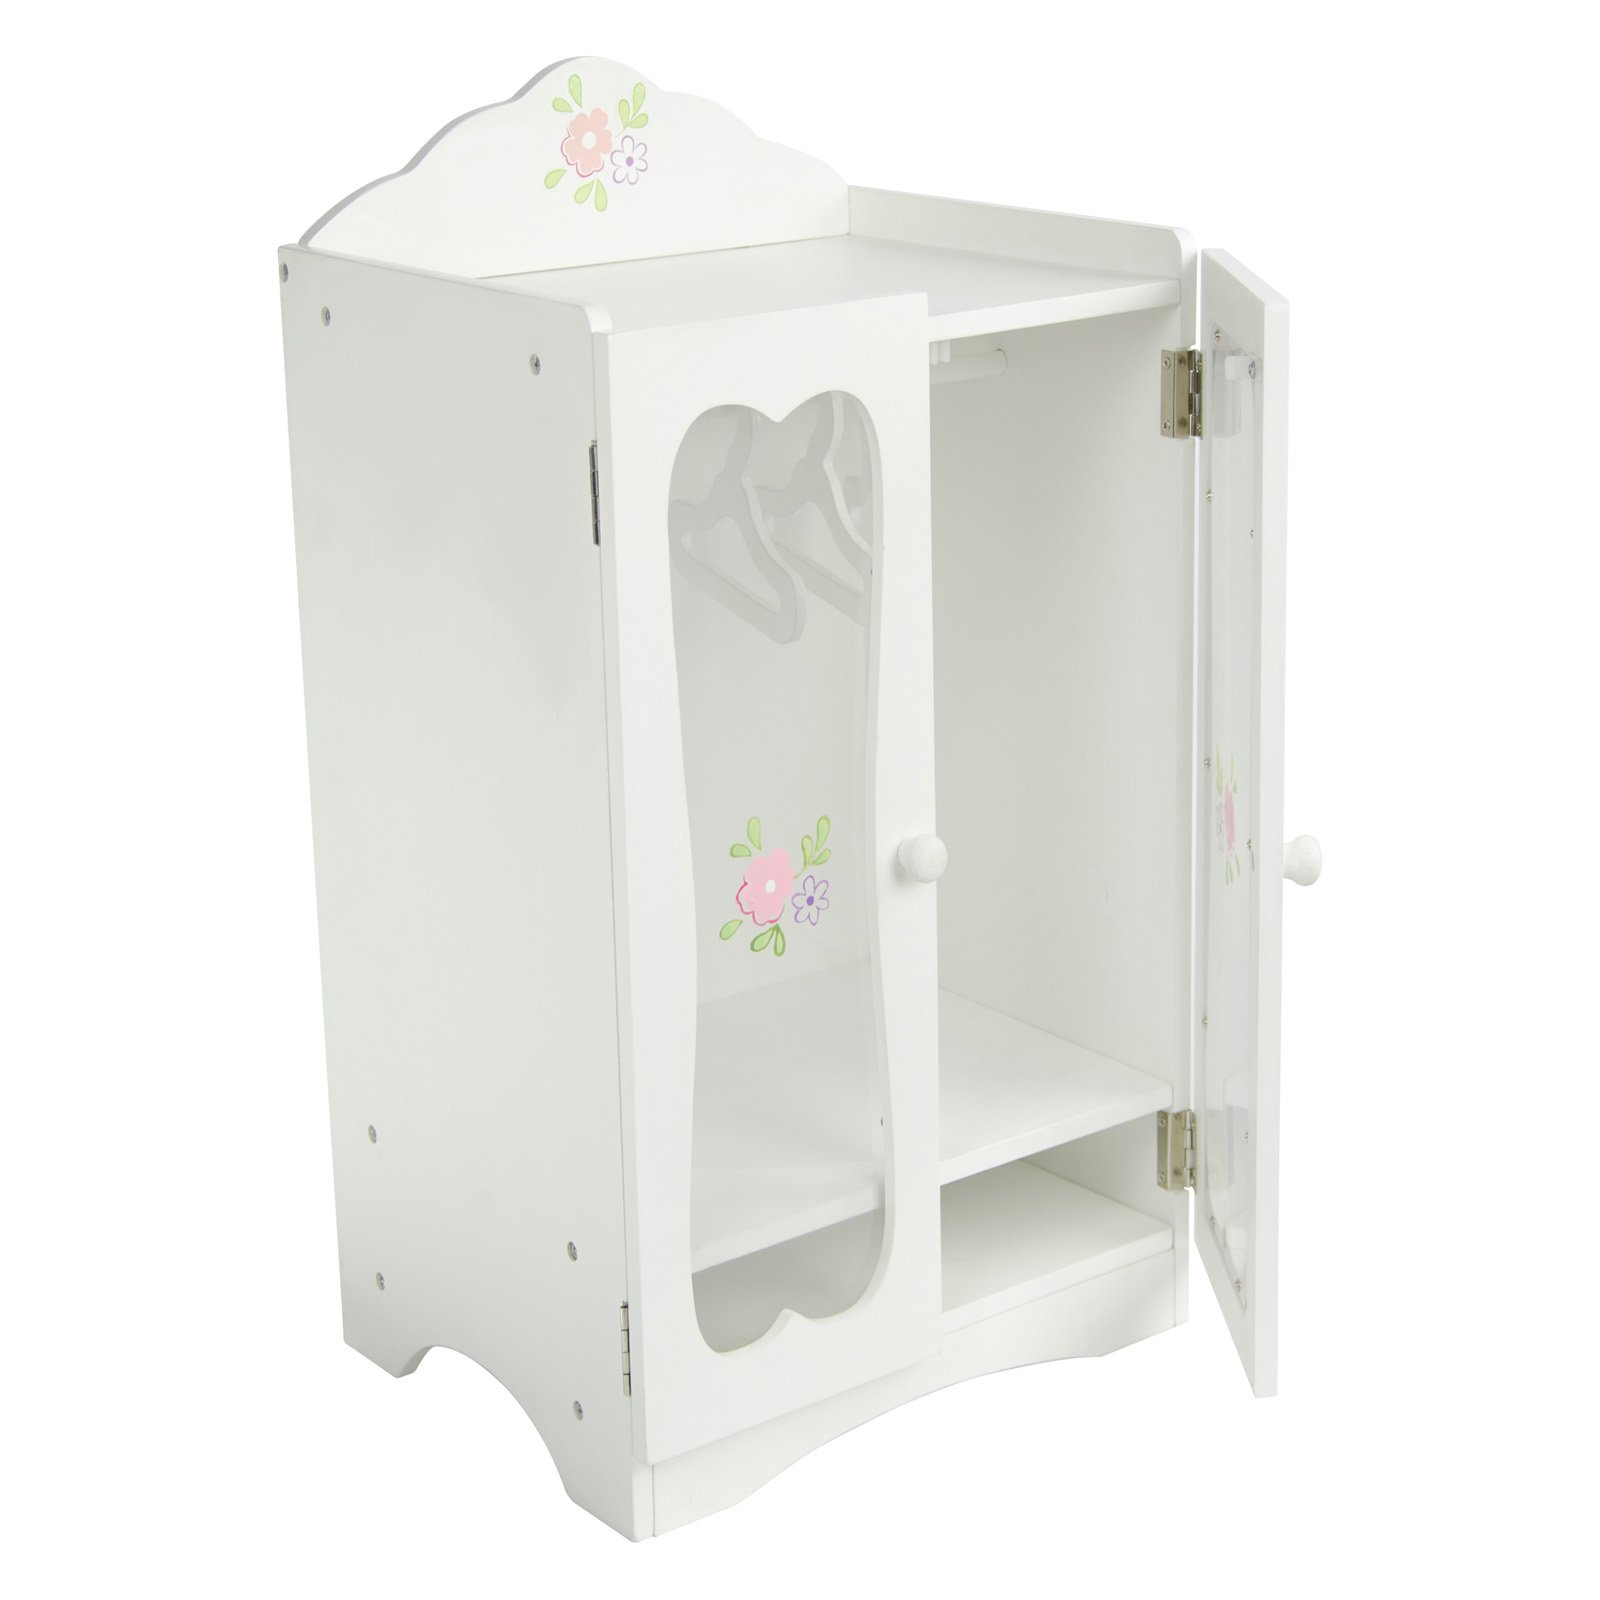 Olivia's Little World Princess Classic Wooden Closet with 3 Hangers (White) Wooden 18 inch Doll Furniture by Teamson